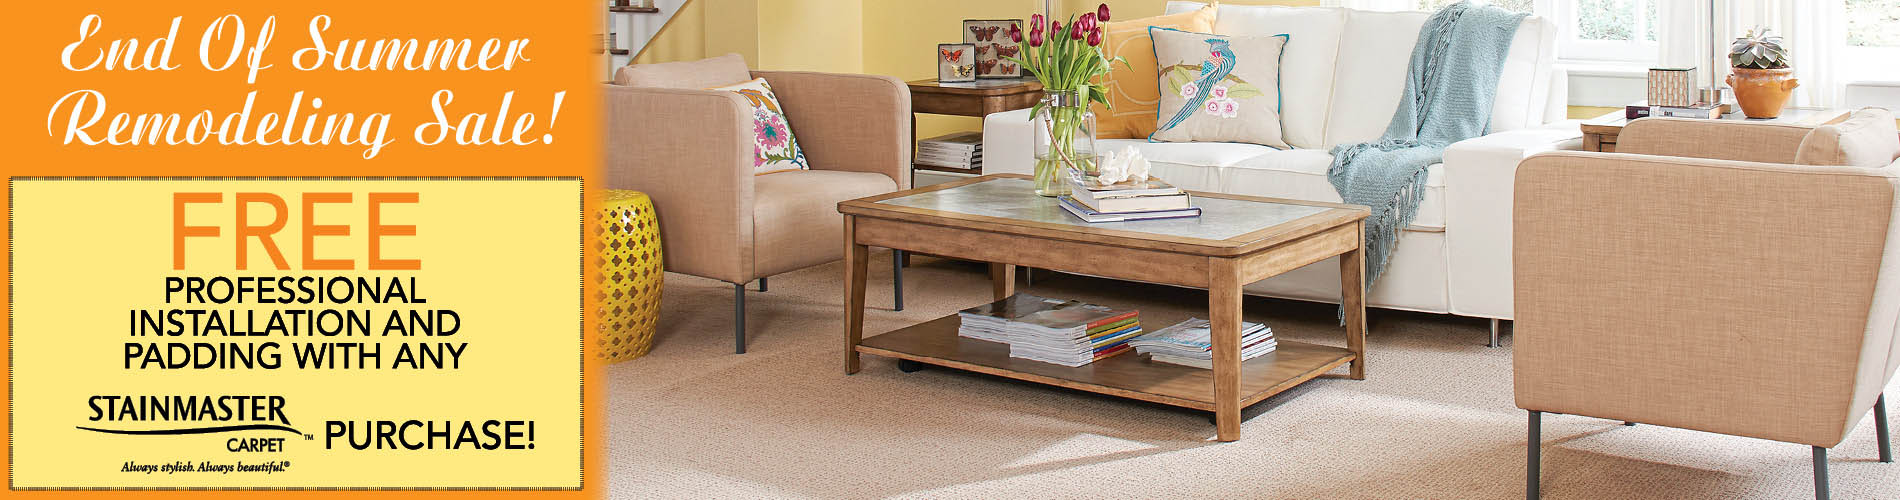 Free professional installation and padding with any Stainmaster™ carpet purchase during the end of summer remodeling sale at Flooring USA in Stuart!